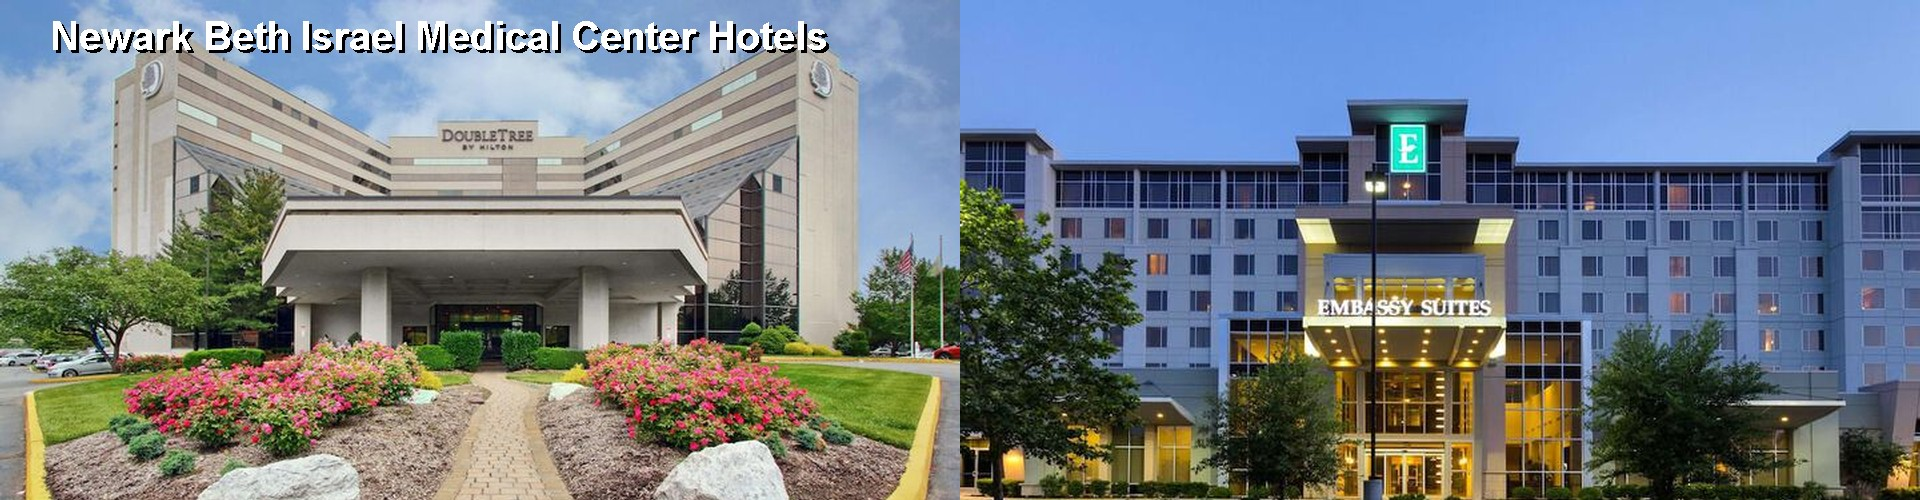 5 Best Hotels near Newark Beth Israel Medical Center